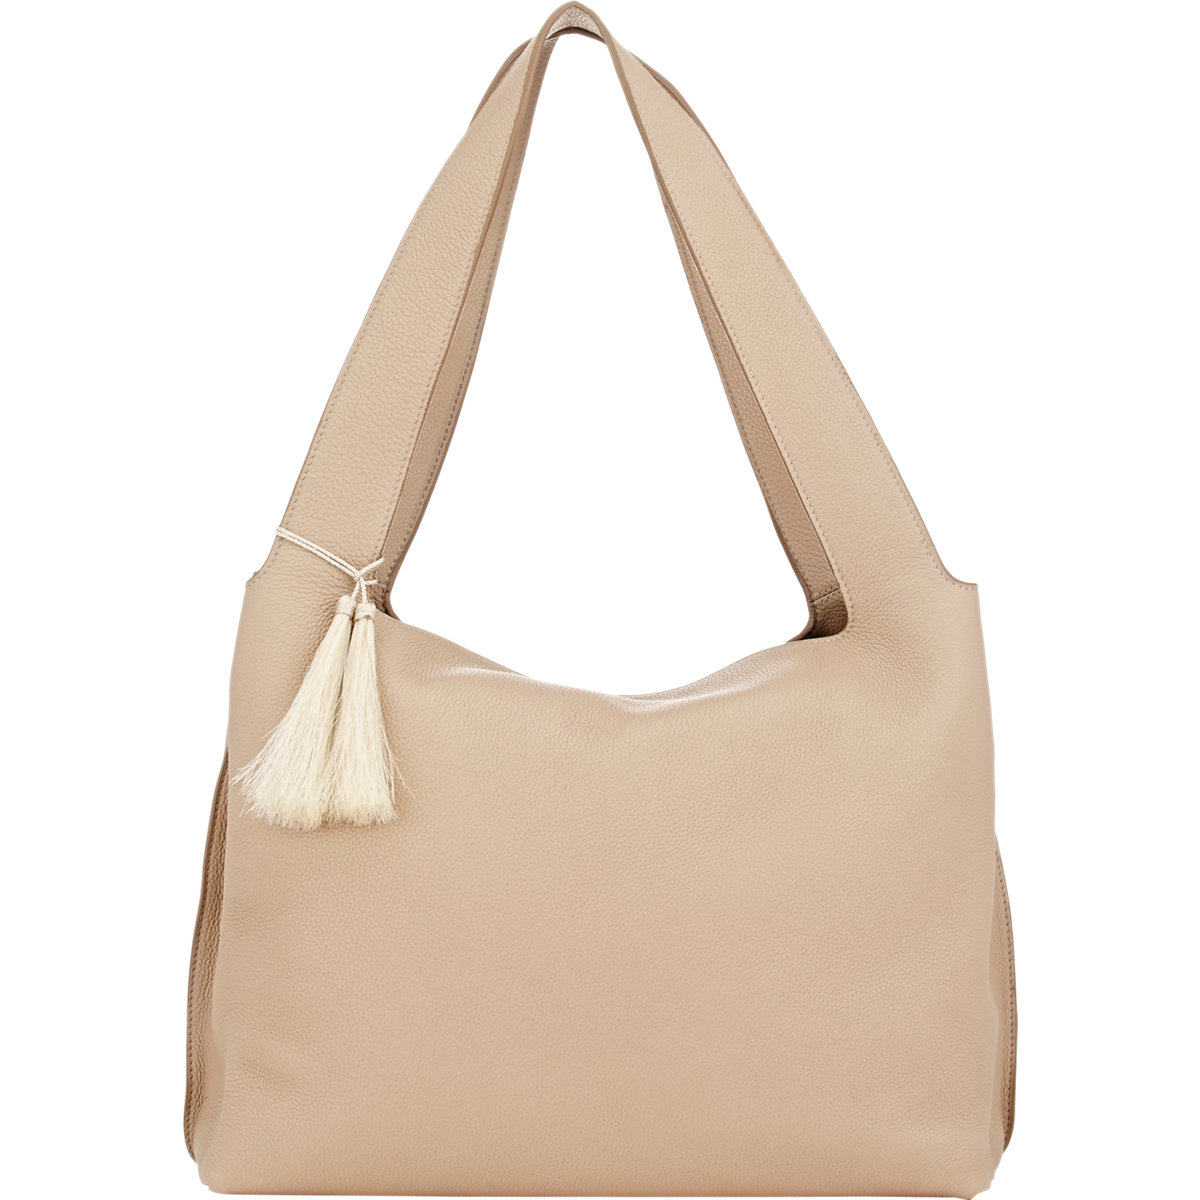 45ebfb1f7a The Row Duplex Leather Shoulder Bag in Natural - Lyst